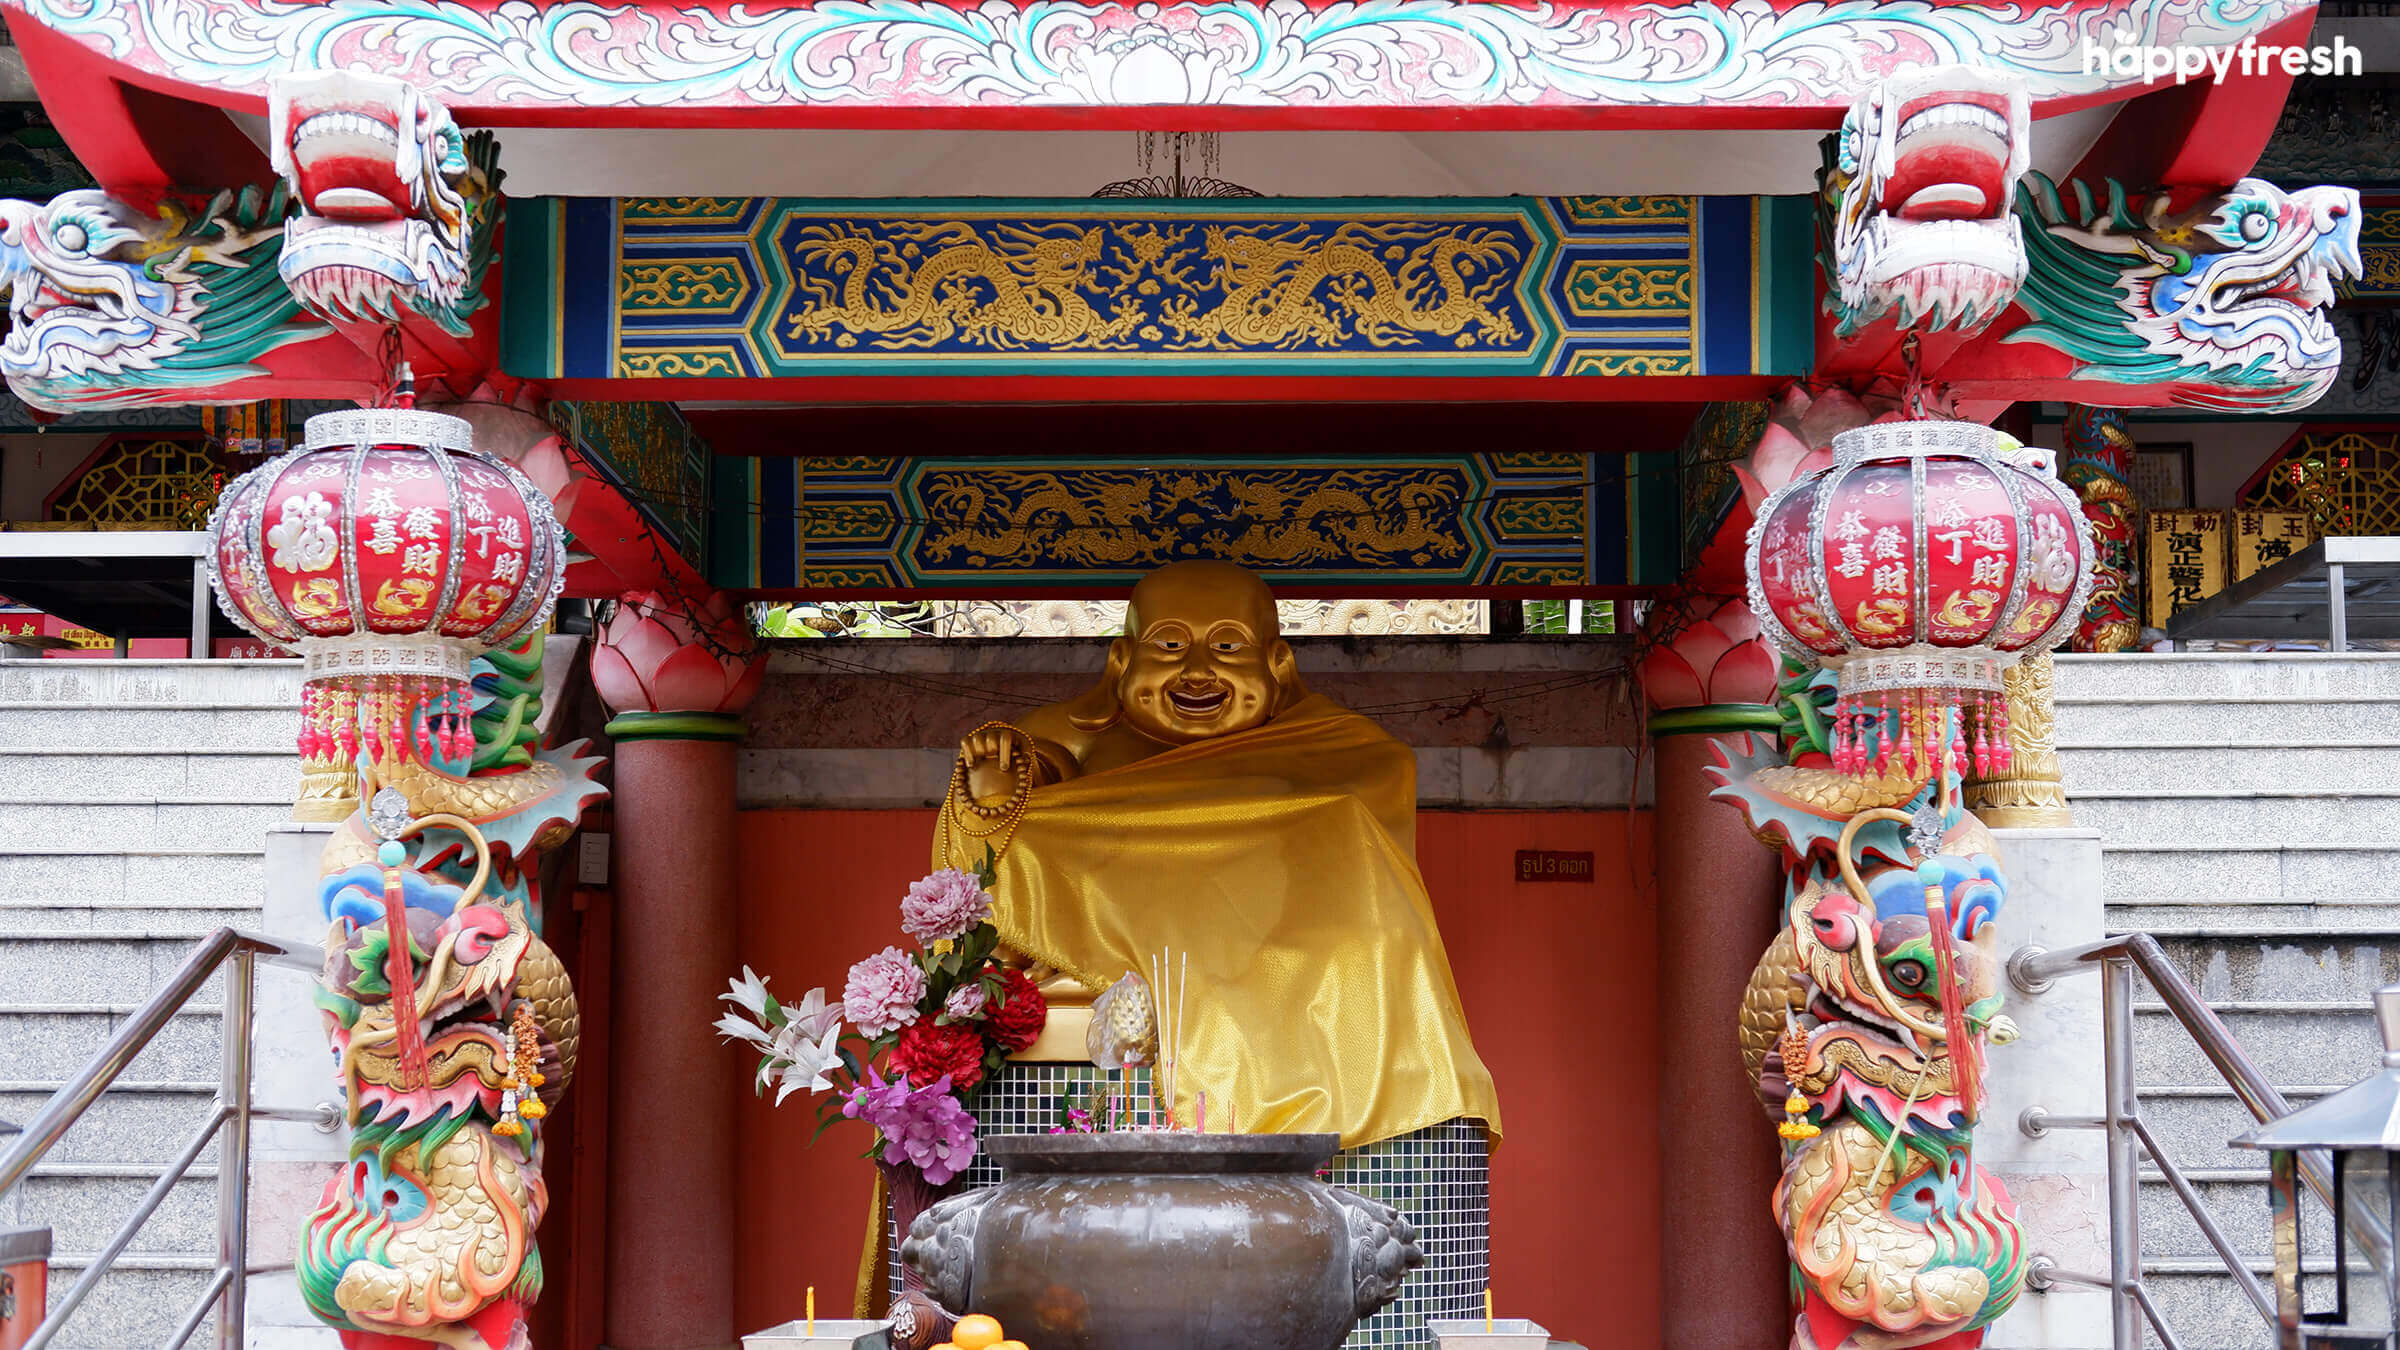 HappyFresh_Visit_6_Chinese_Shrines_In_Chinatown_Kuan_Yim_Shrine_2